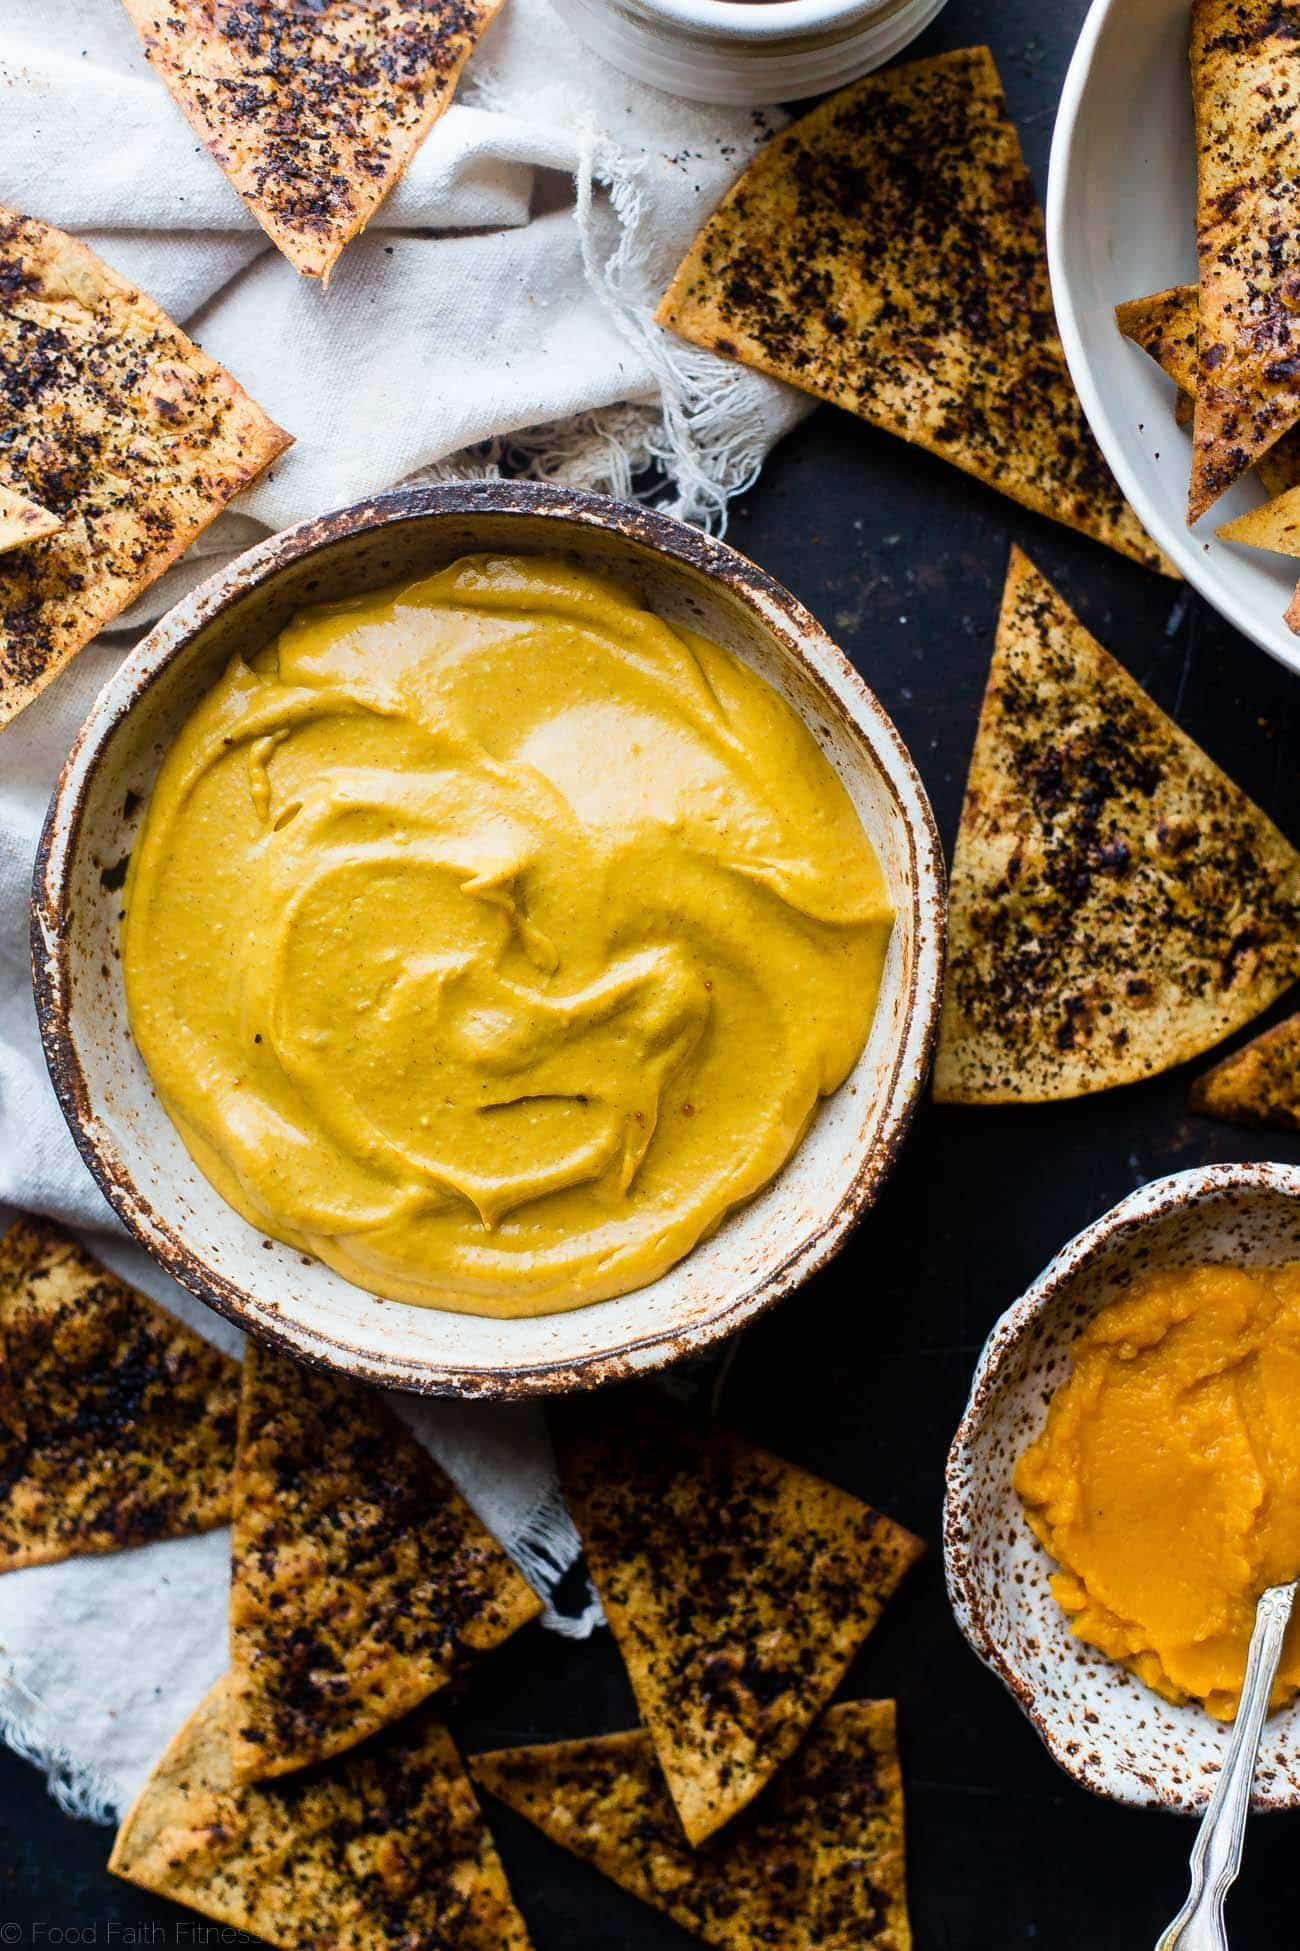 Vegan Pumpkin Pie Dip - This easy healthy pumpkin pie dip is served with baked coffee chips so it tastes like a pumpkin spice latte! It's a healthy holiday dessert that is so simple to make! | Foodfaithfitness.com | @FoodFaithFIt